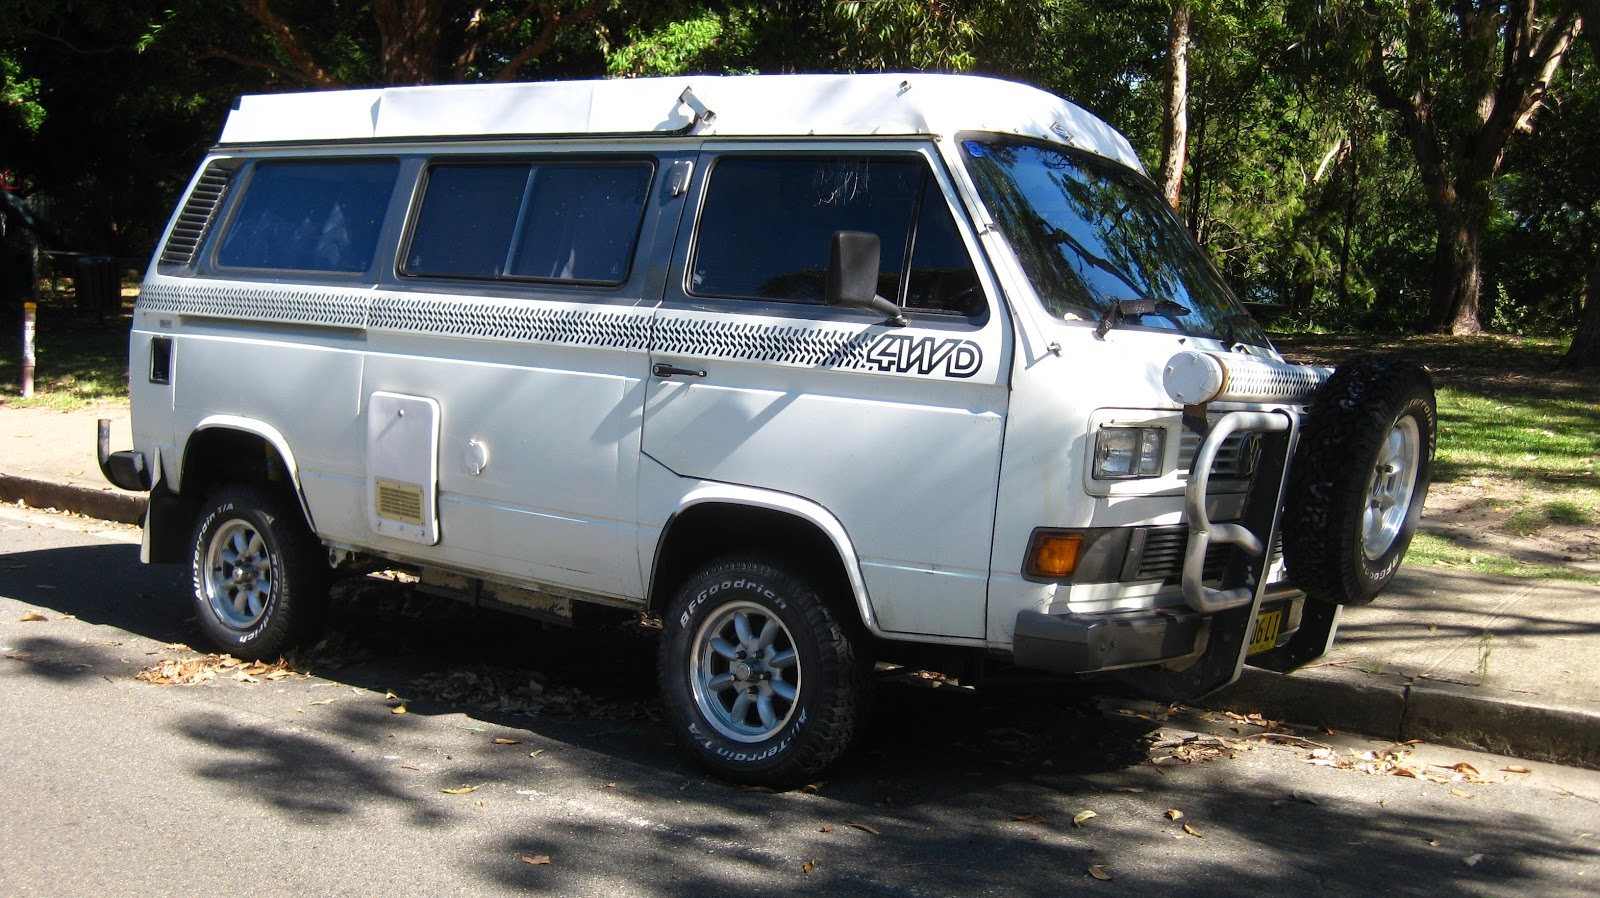 Aussie Old Parked Cars  1980s Volkswagen Transporter Syncro 4WD